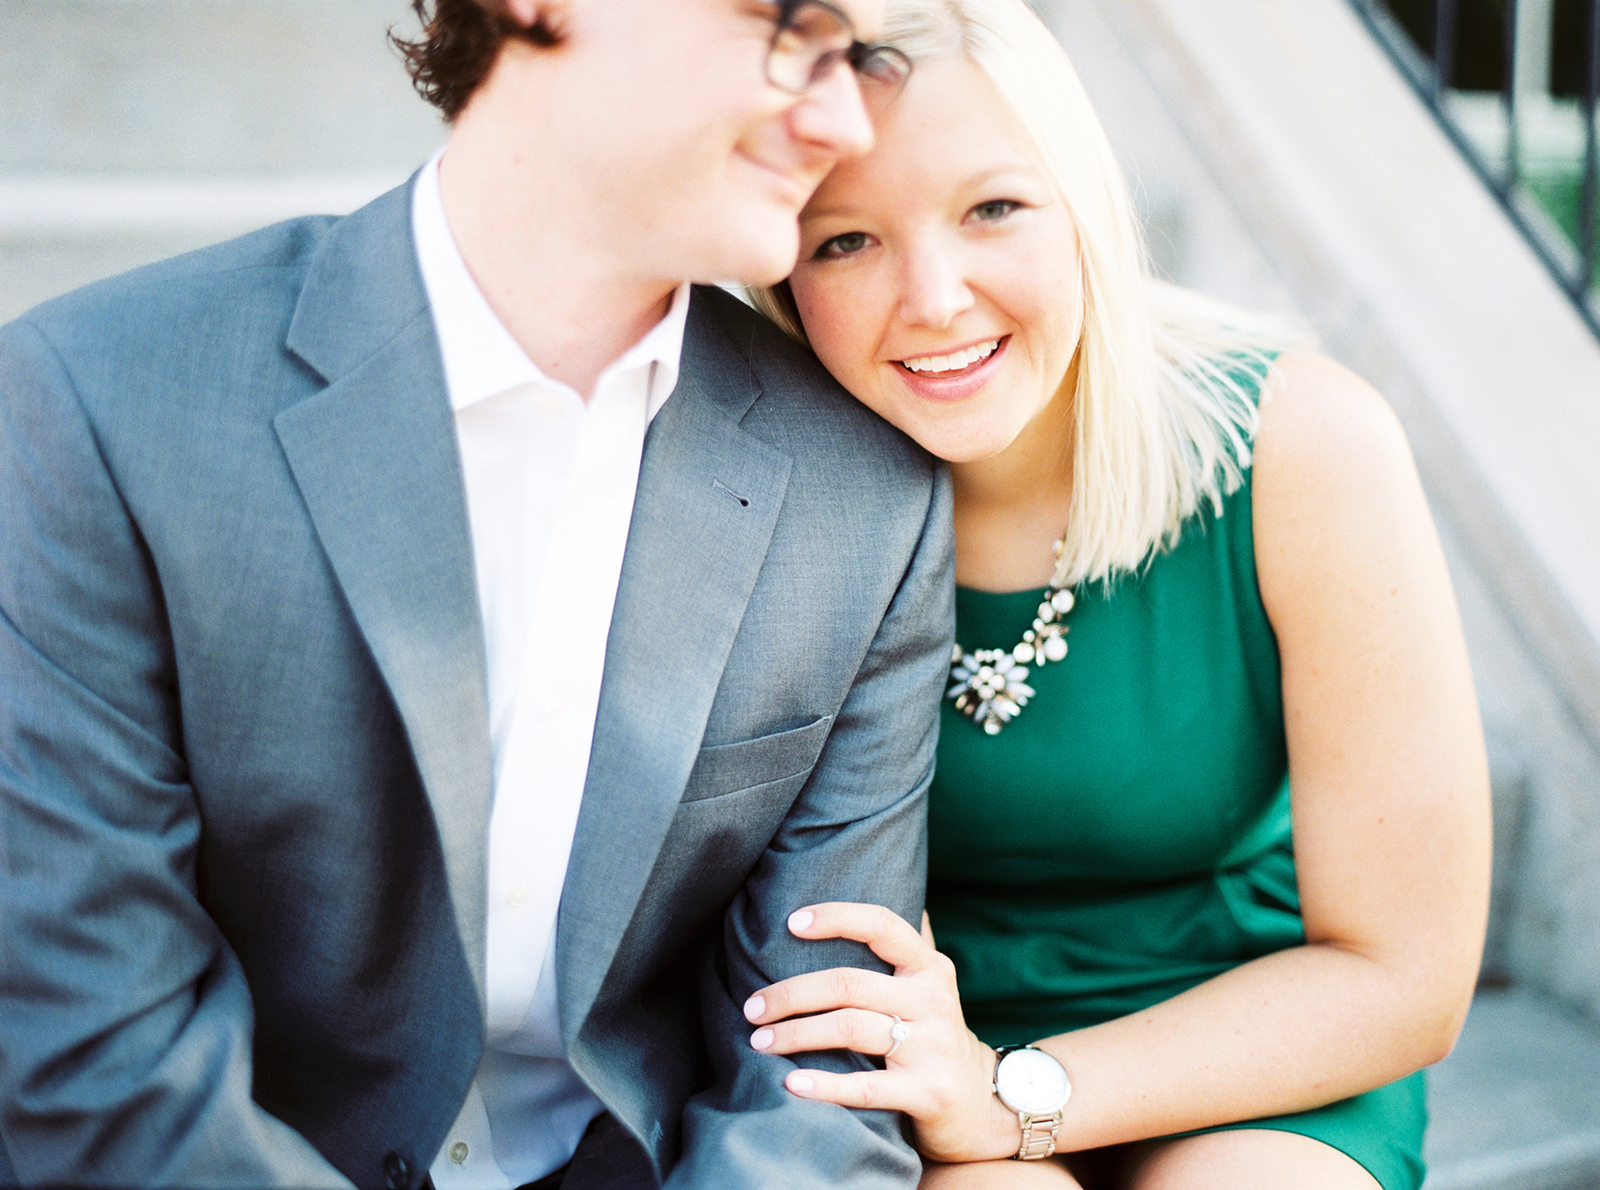 Lafayette Park Engagement Session by Oldani Photography St. Louis Wedding Photographers 46.jpg